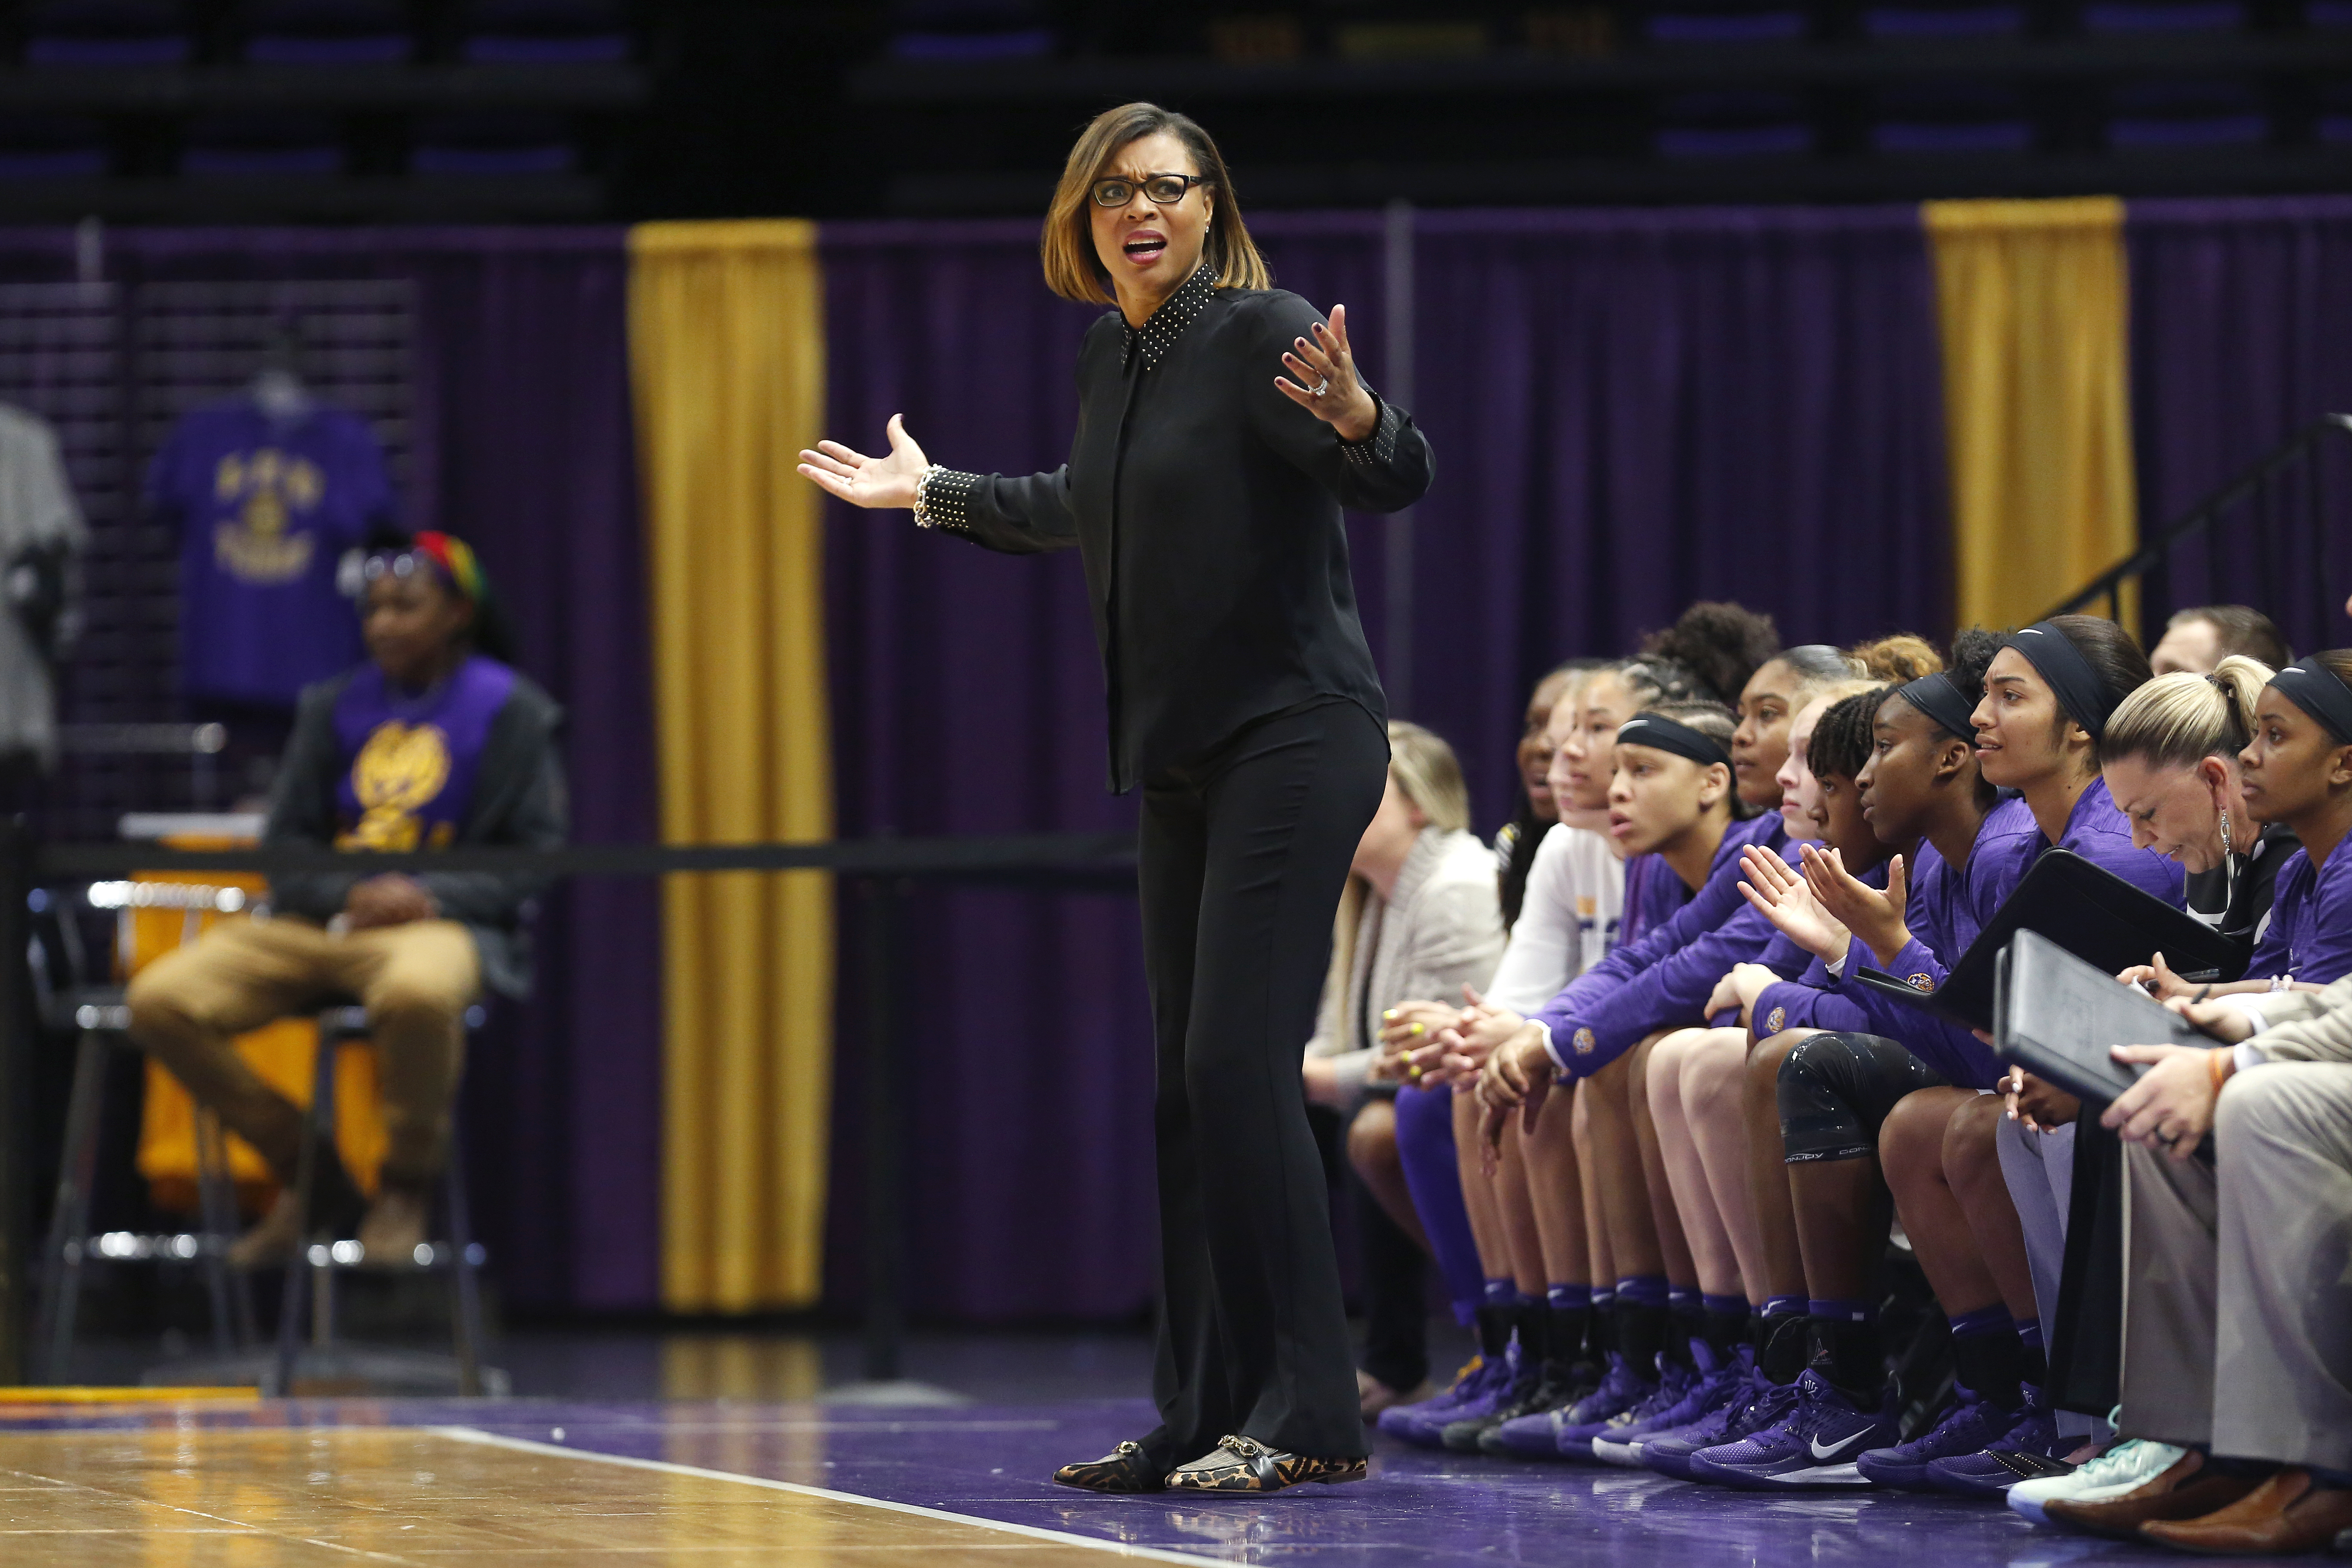 Lsu Women S Basketball Hosts Florida In Annual Play4kay Game Wgno